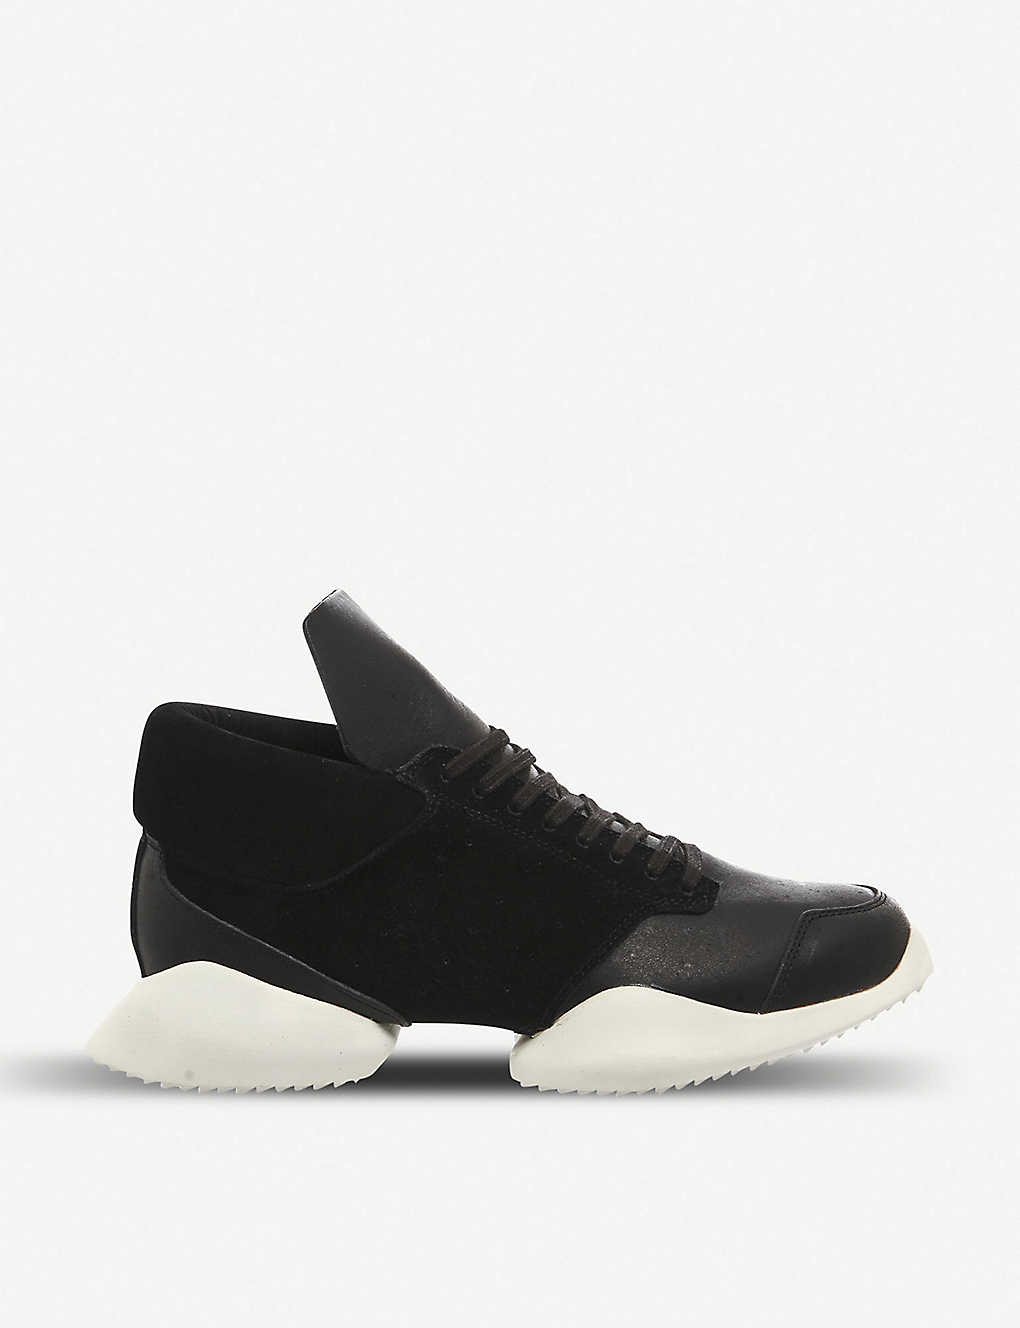 03006073e985 ADIDAS X RICK OWENS - Tech Runner leather trainers